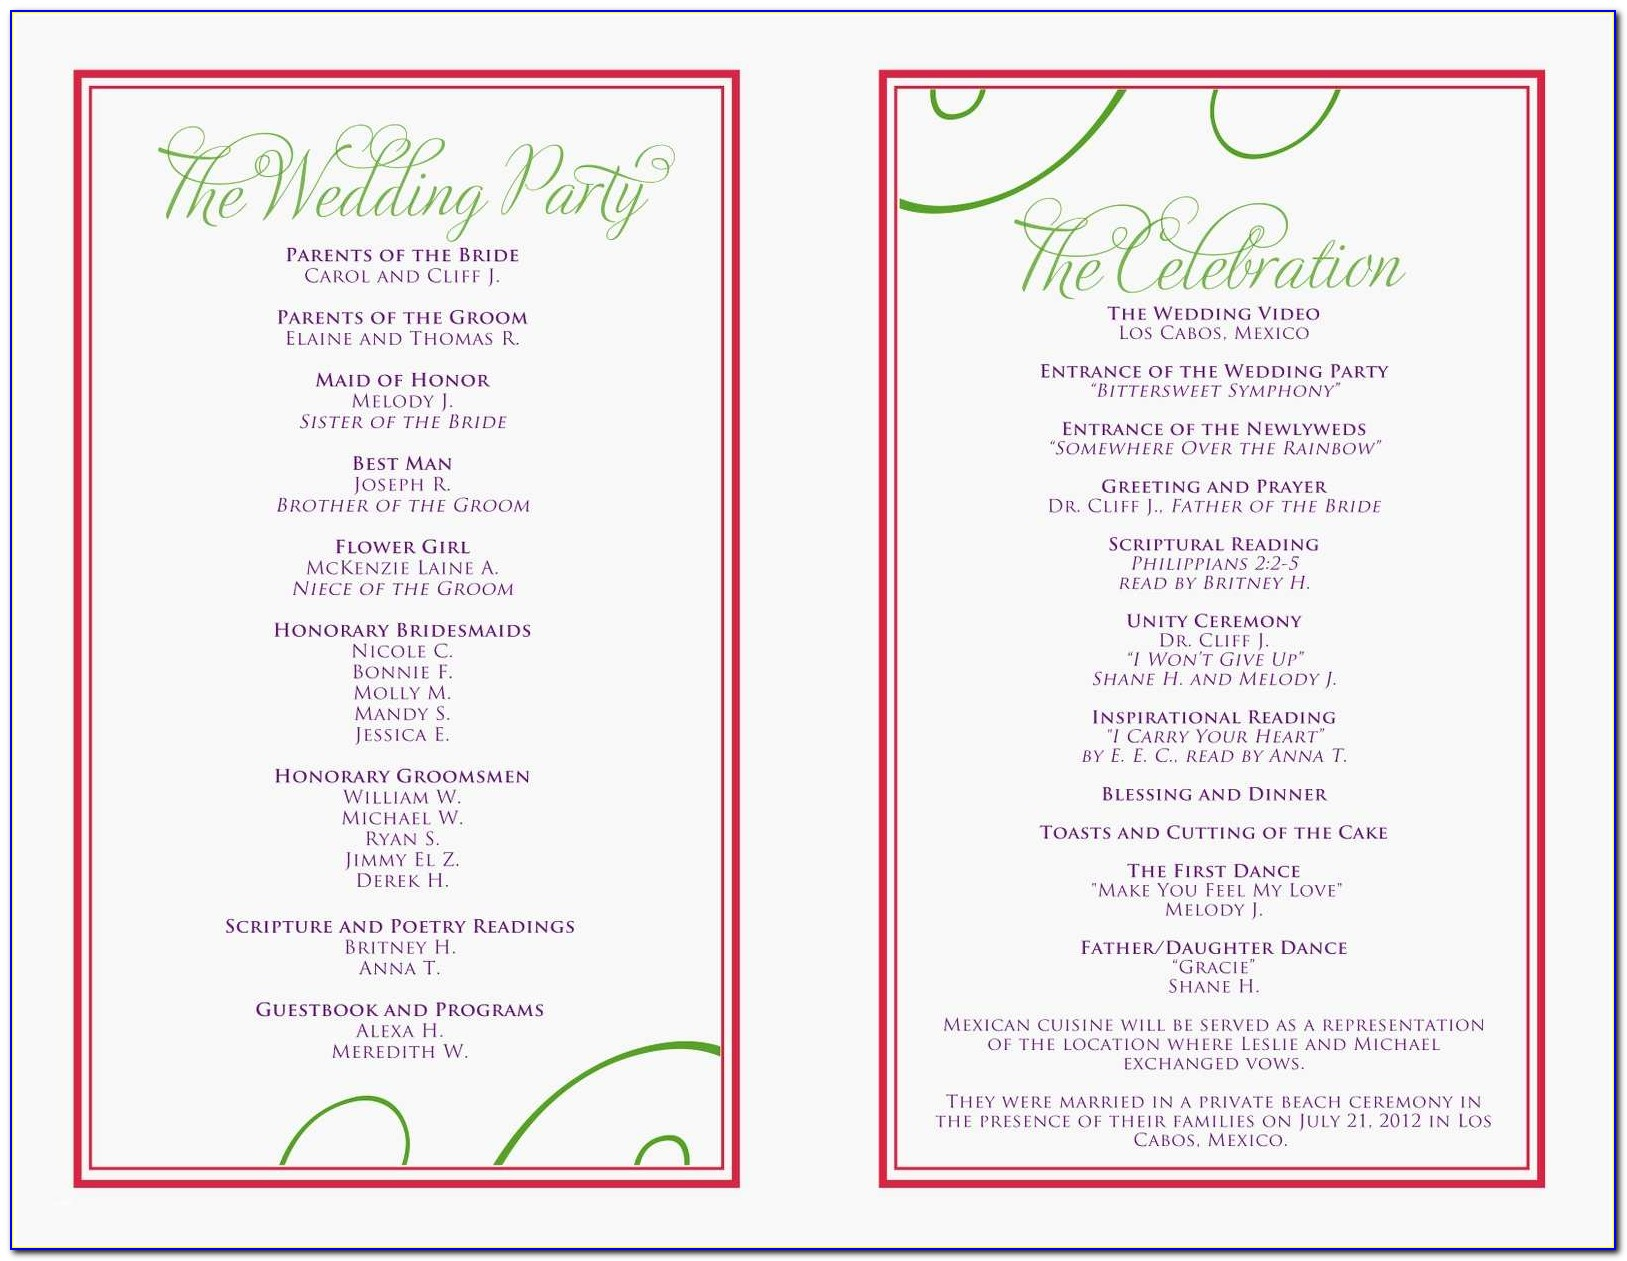 50th Birthday Party Program Elegant Birthday Program Template Unique Free Wedding Itinerary Template